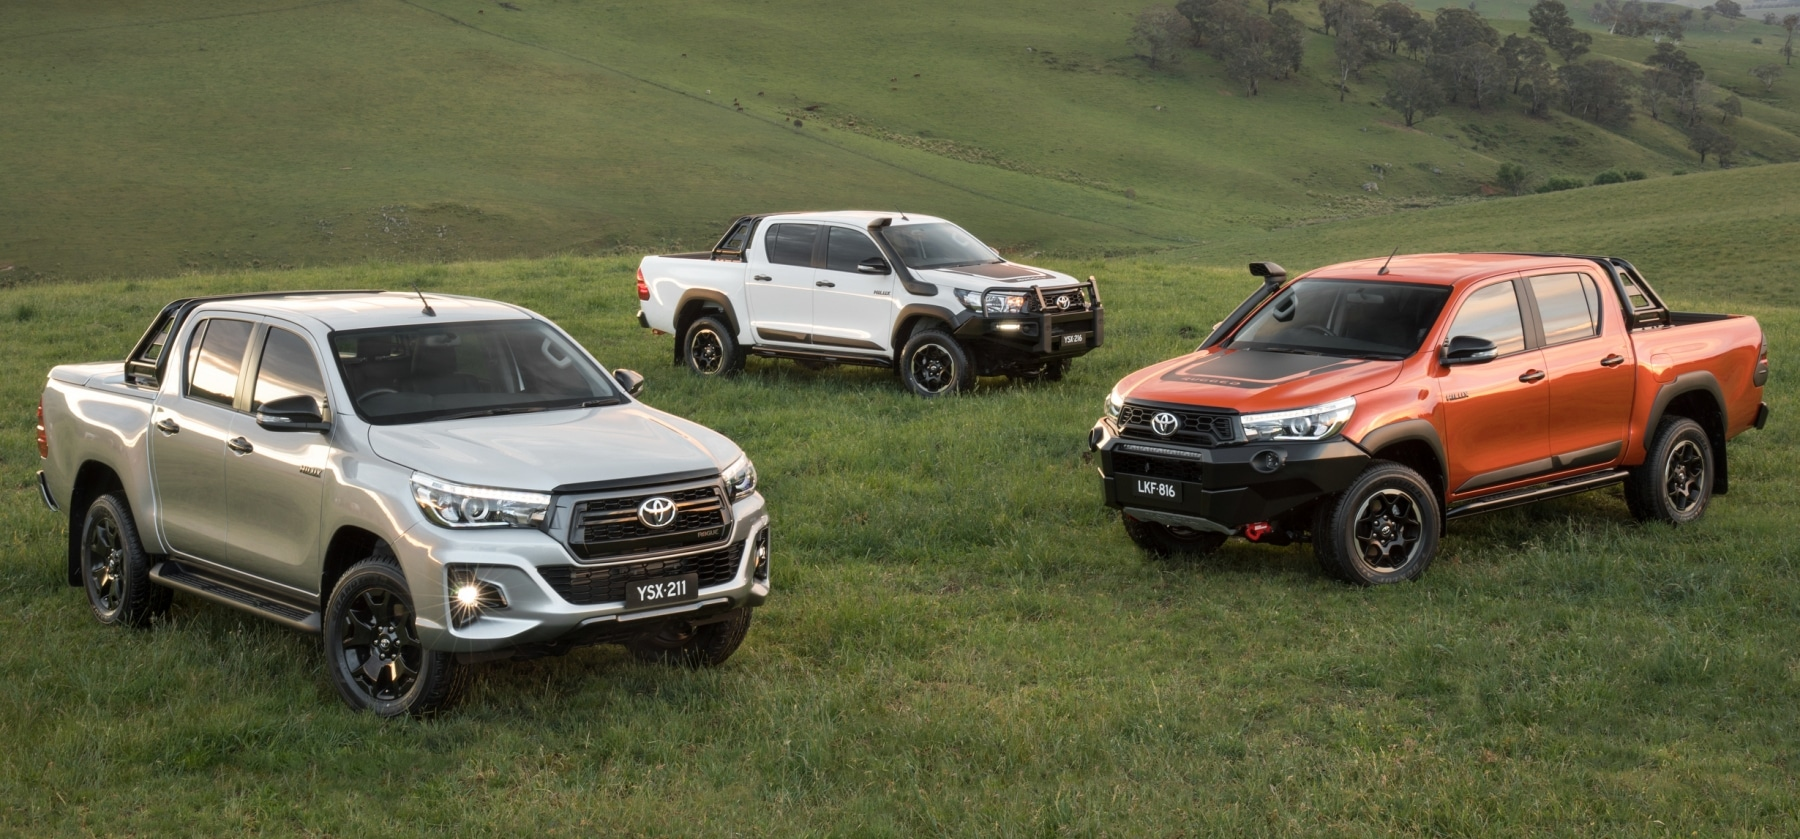 toyota hilux rugged x different models